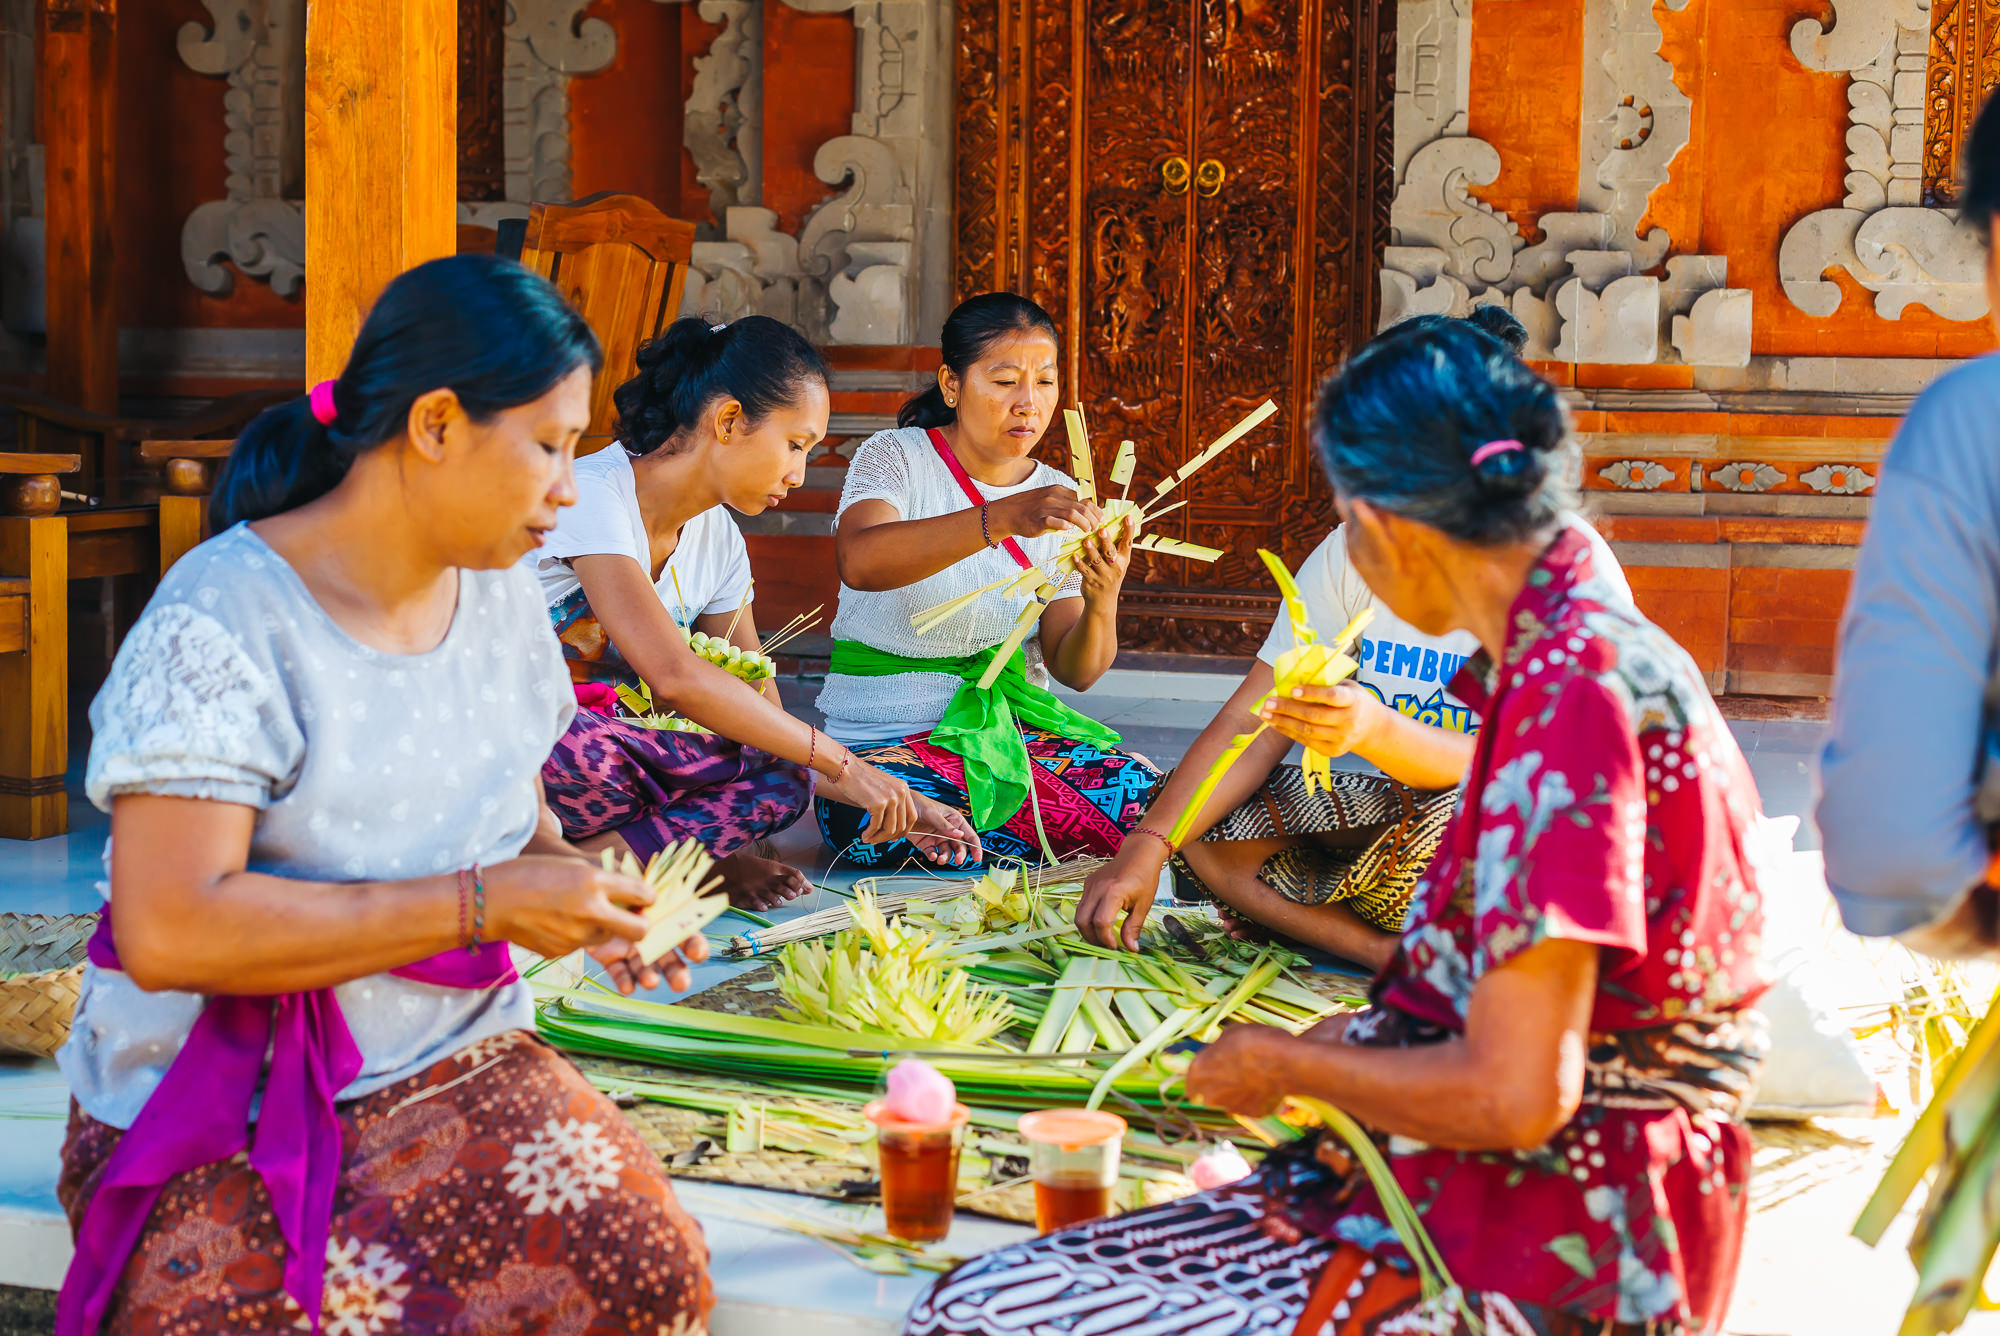 Balinese women creating offerings